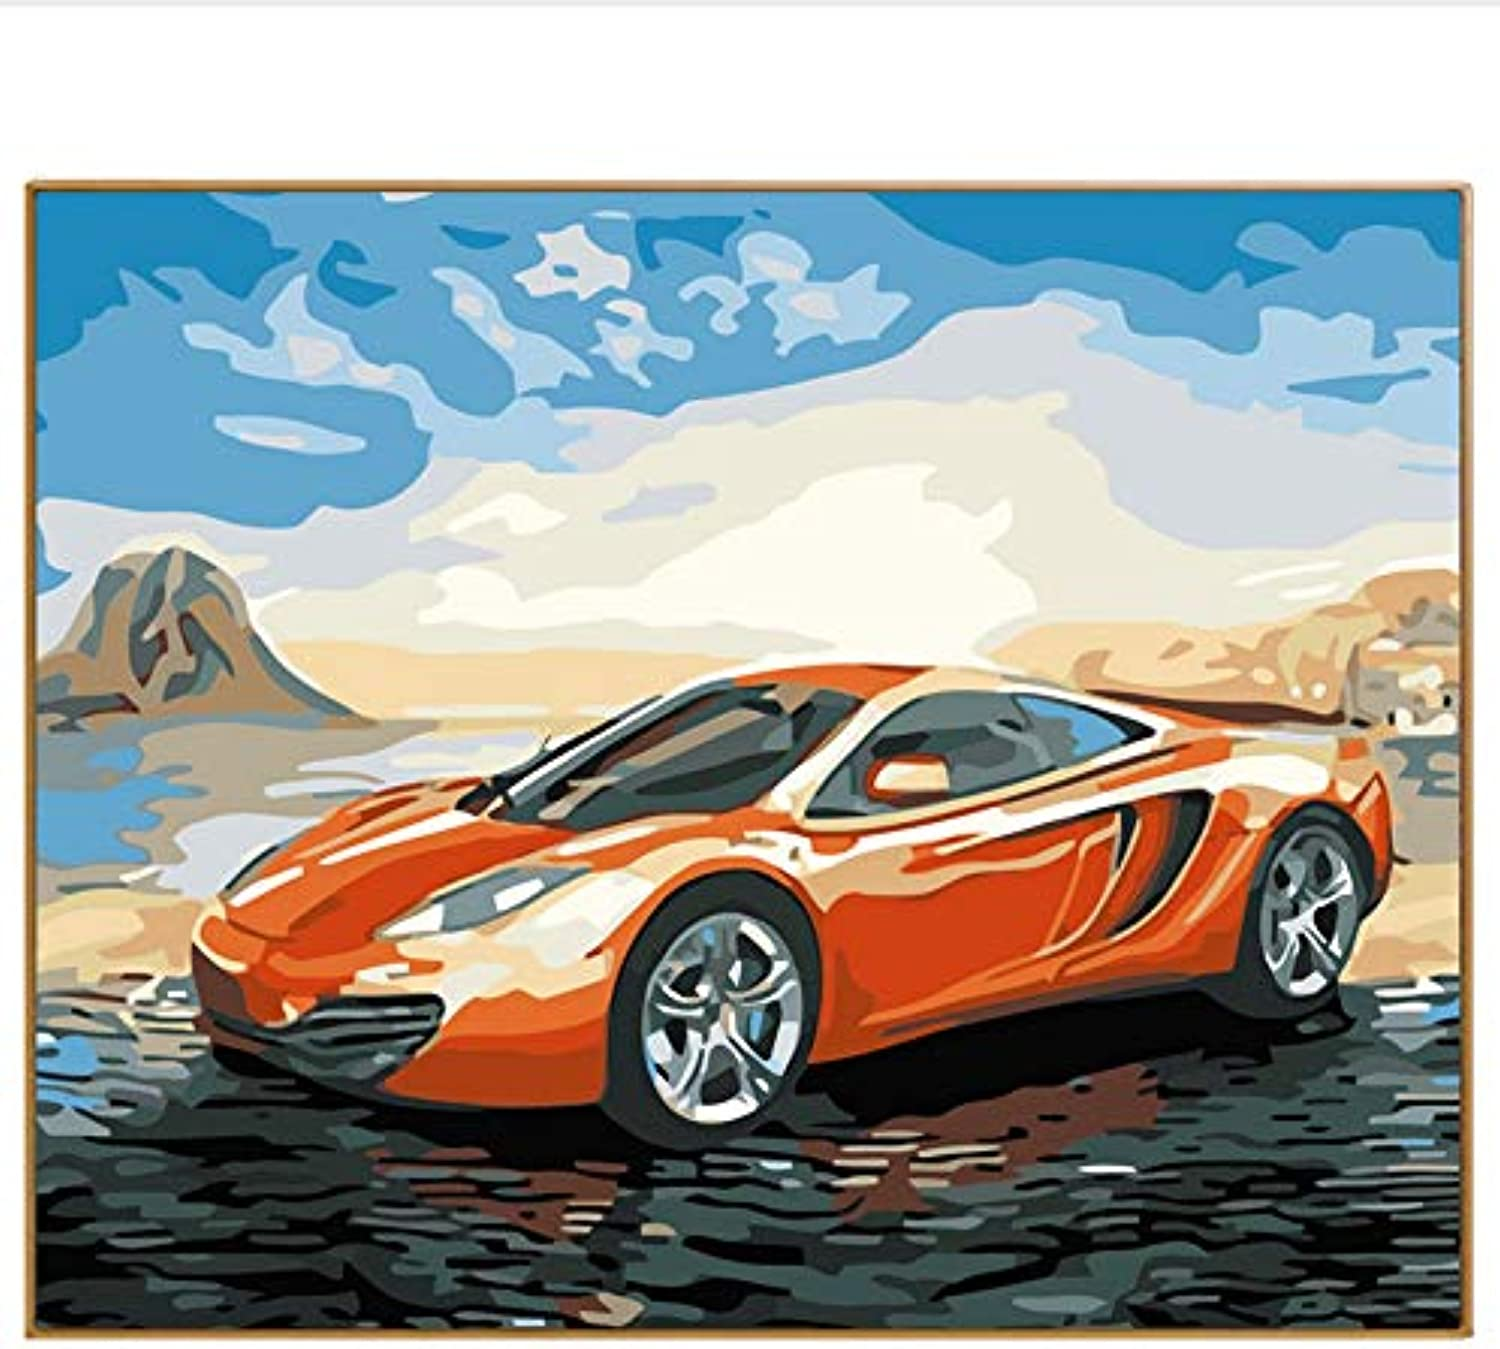 DIY Abstract Picture Sports Car Oil Painting By Numbers Hand Drawing On Canvas Digital coloring By Numbers Home Decor Wall, Framed, 50x60cm